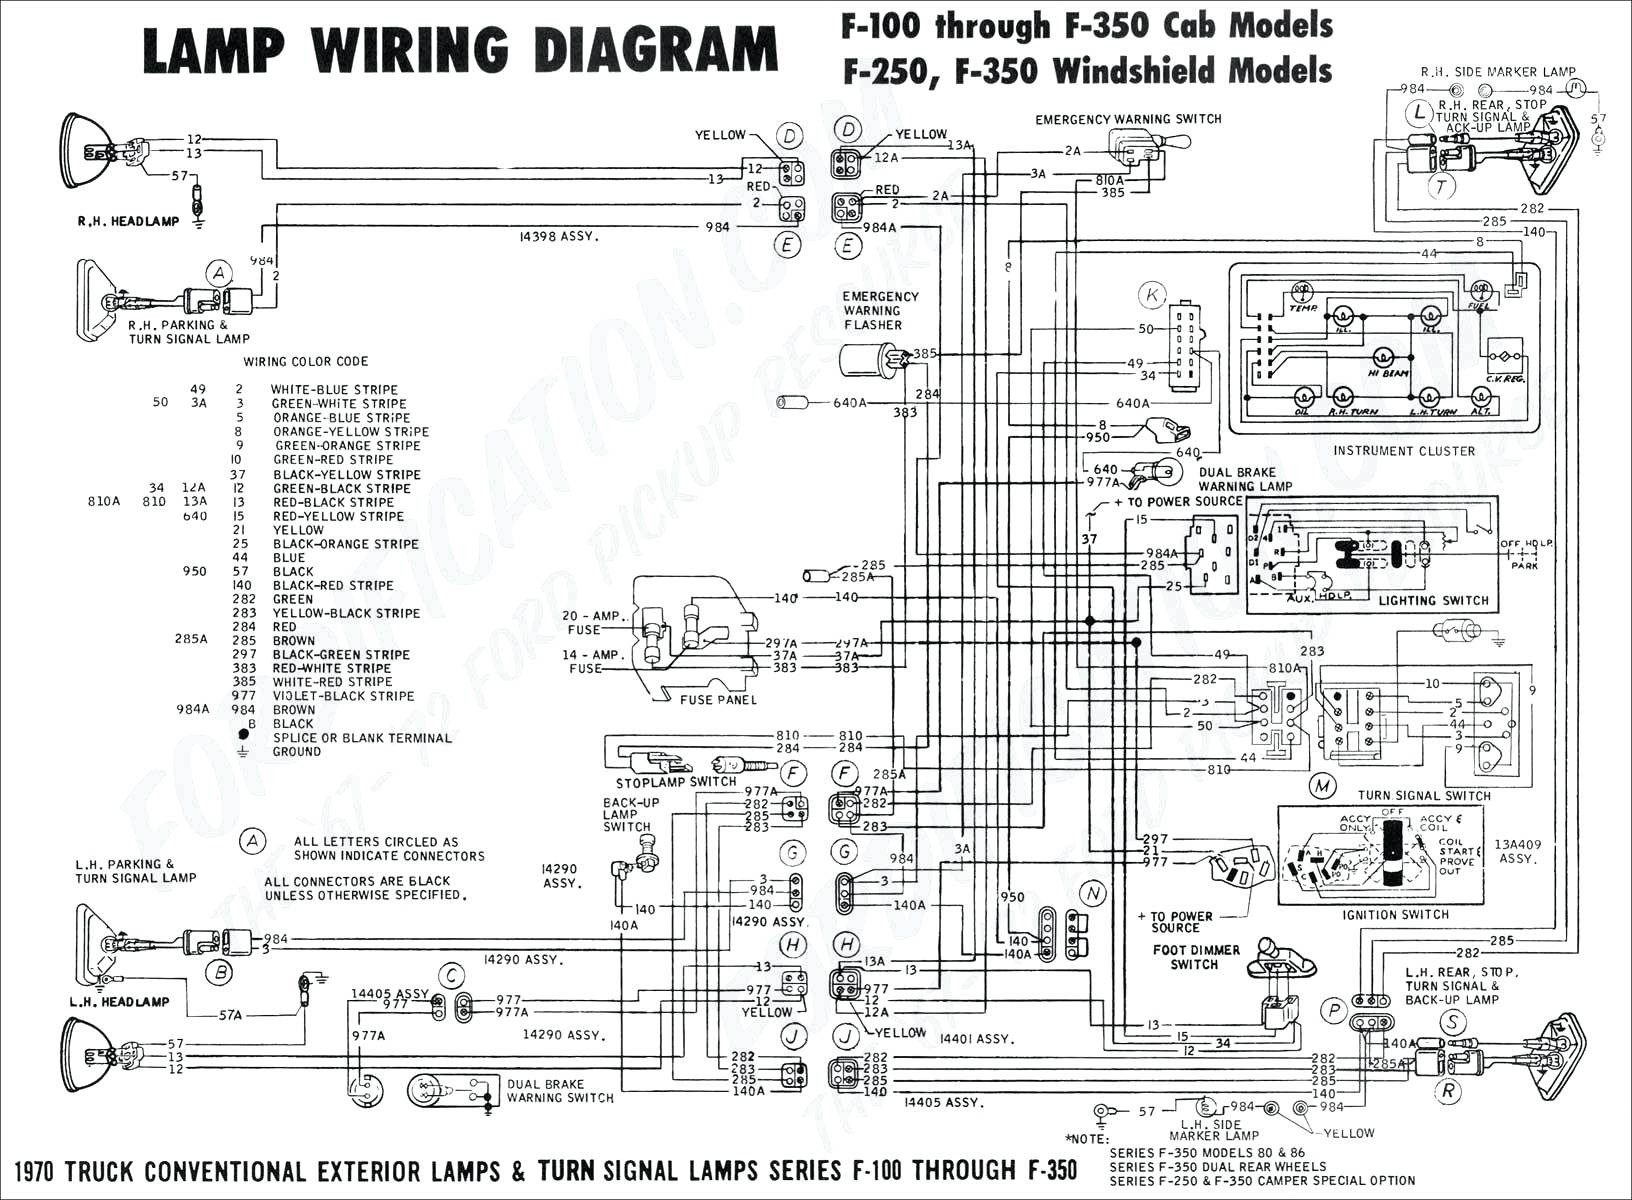 ford f150 engine wiring harness diagram Download-Wiring Diagram ford F150 Trailer Lights Truck Best ford Engine Diagrams 1997 Ranger Diagram Wiring Harness 7-c